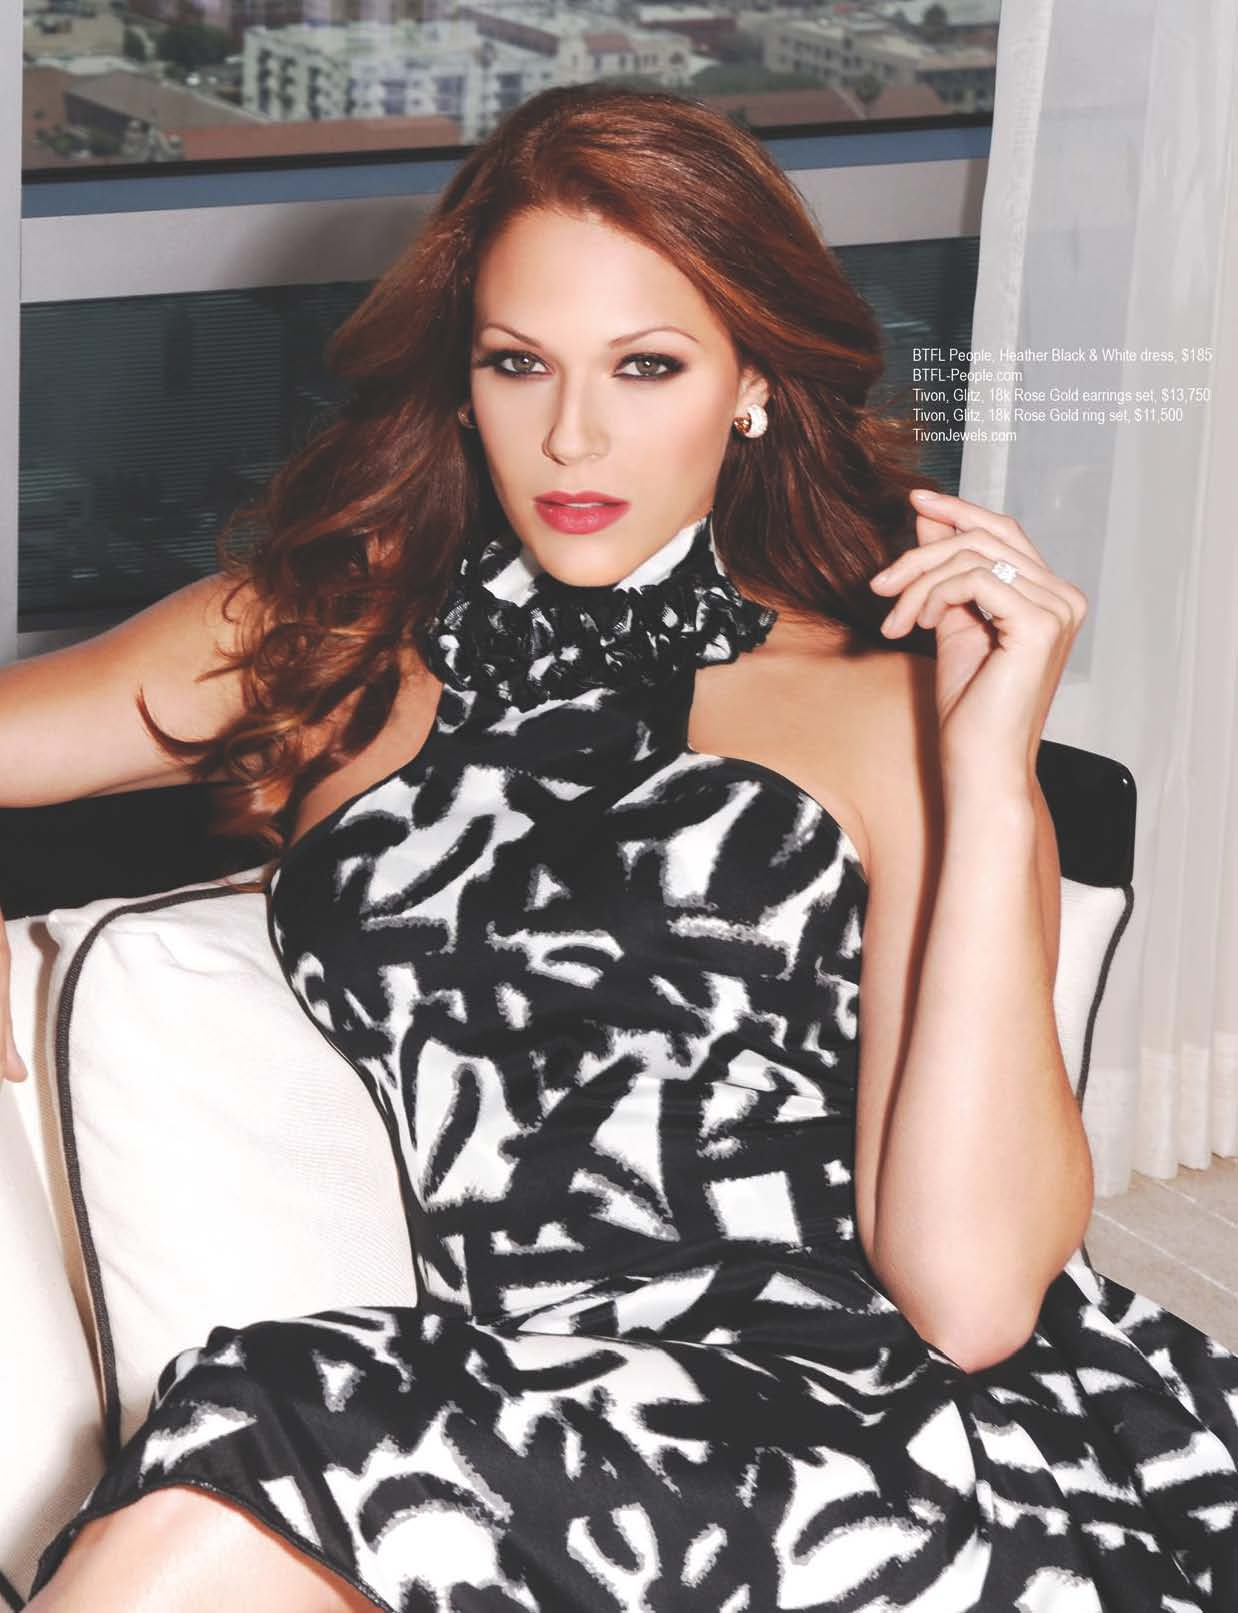 25527_septimiu29_AmandaRighetti_Regard_Aug_Sept20123_122_186lo.jpg